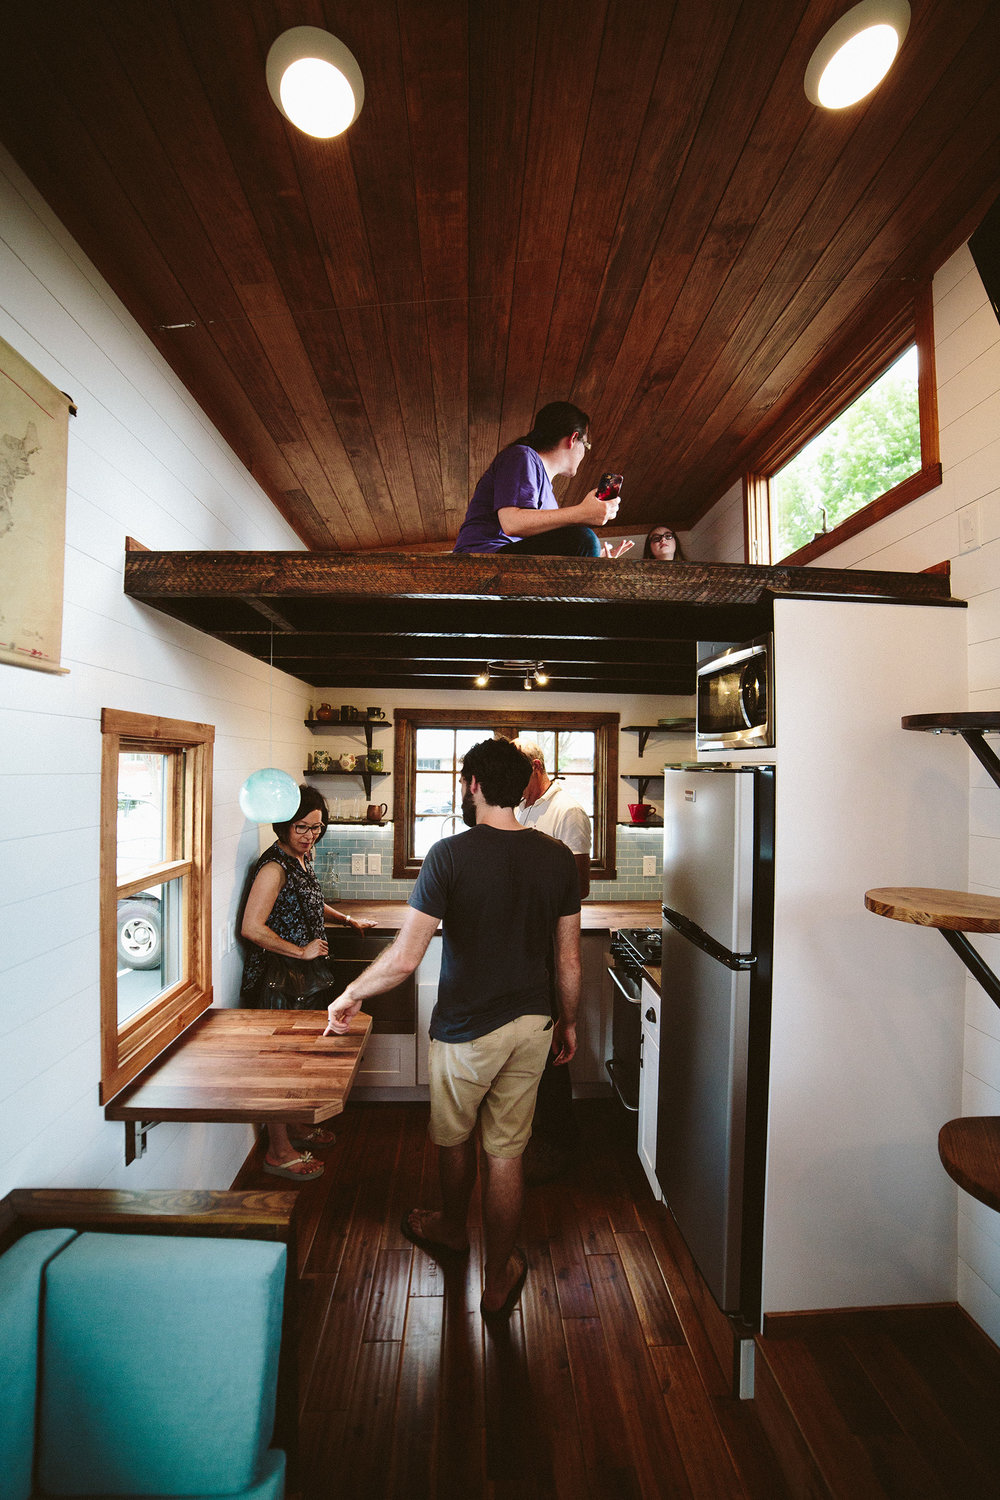 """Want to join a tiny house community? Wind River Tiny Homes can help. - """"By contracting an experienced builder like Wind River Tiny Homes, you can be sure your tiny house is built to the standards required by the community you wish to call home."""""""